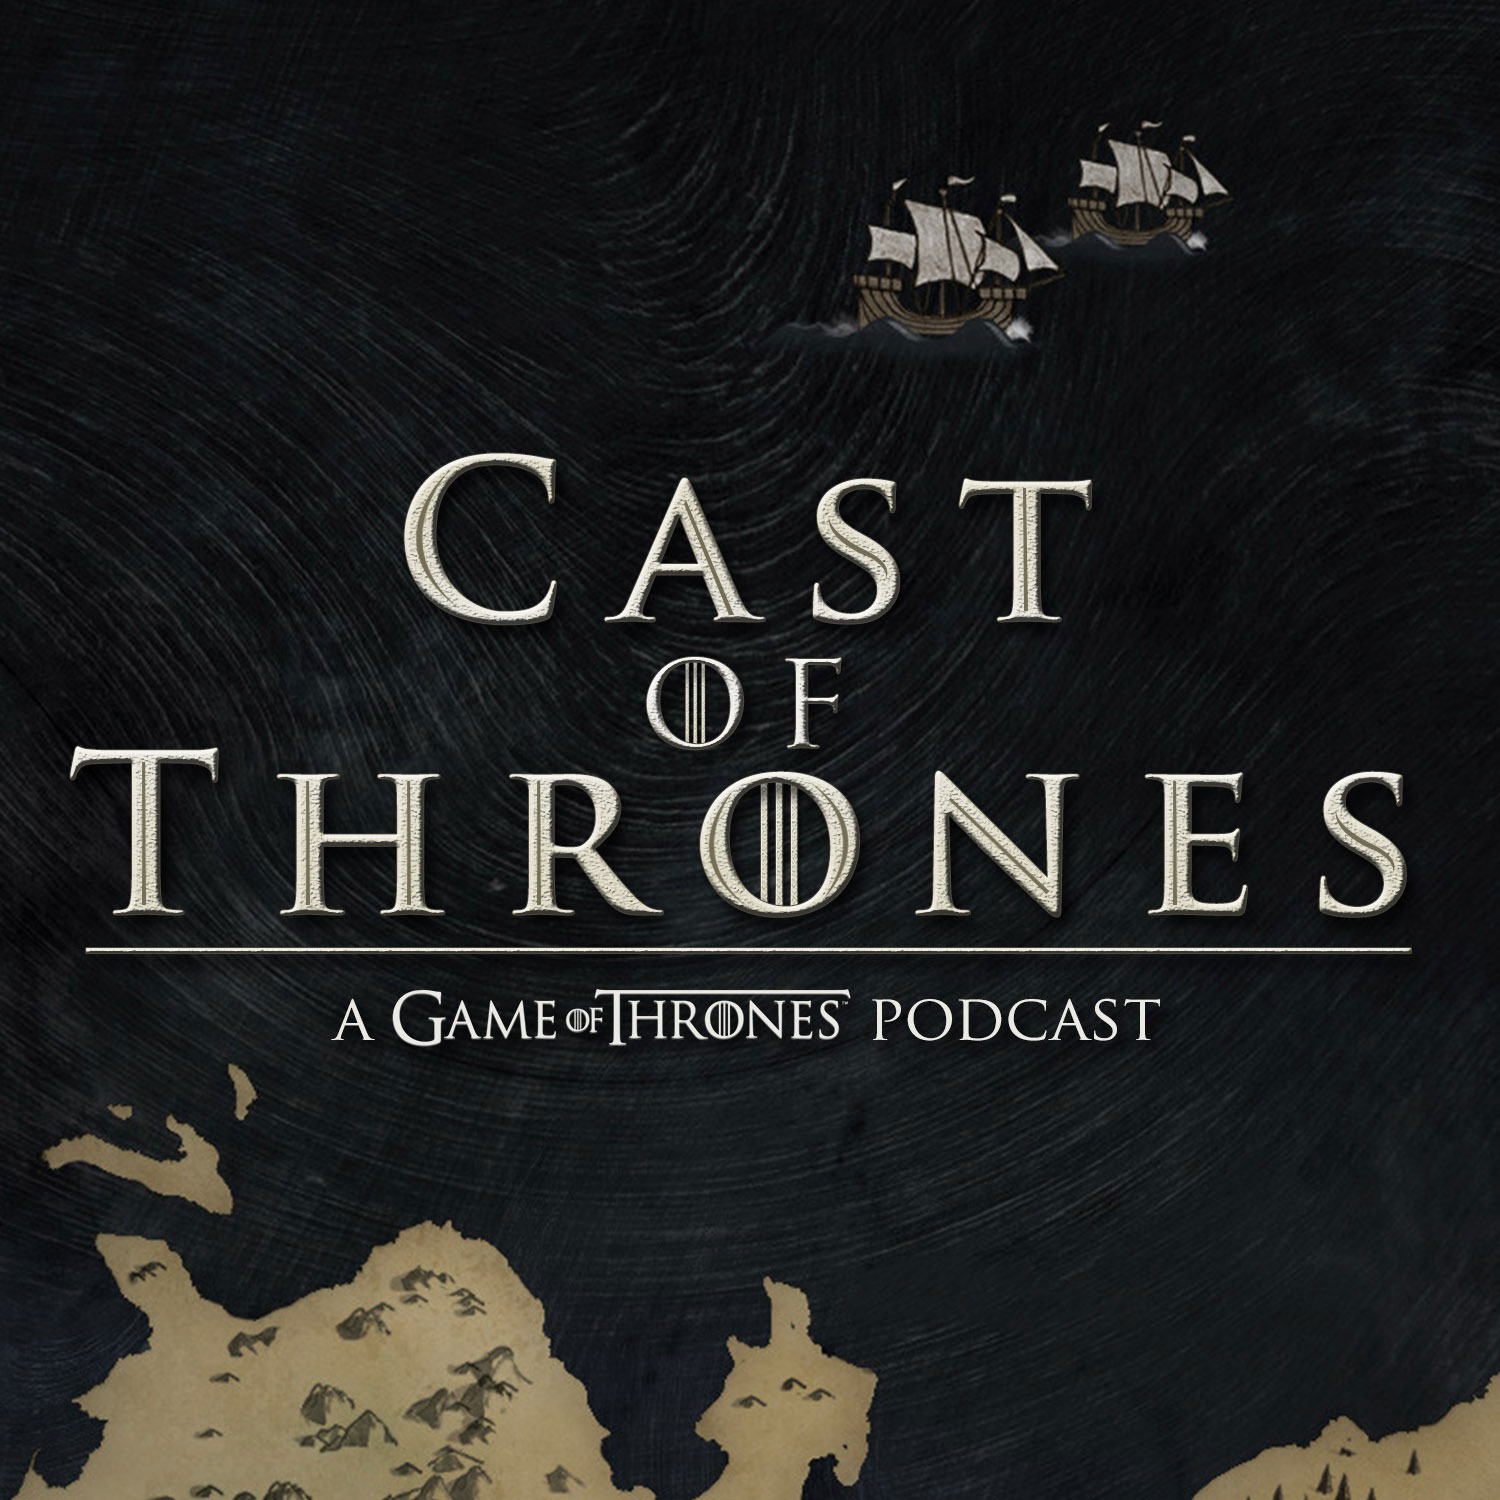 Cast of Thrones - The Game of Thrones Podcast